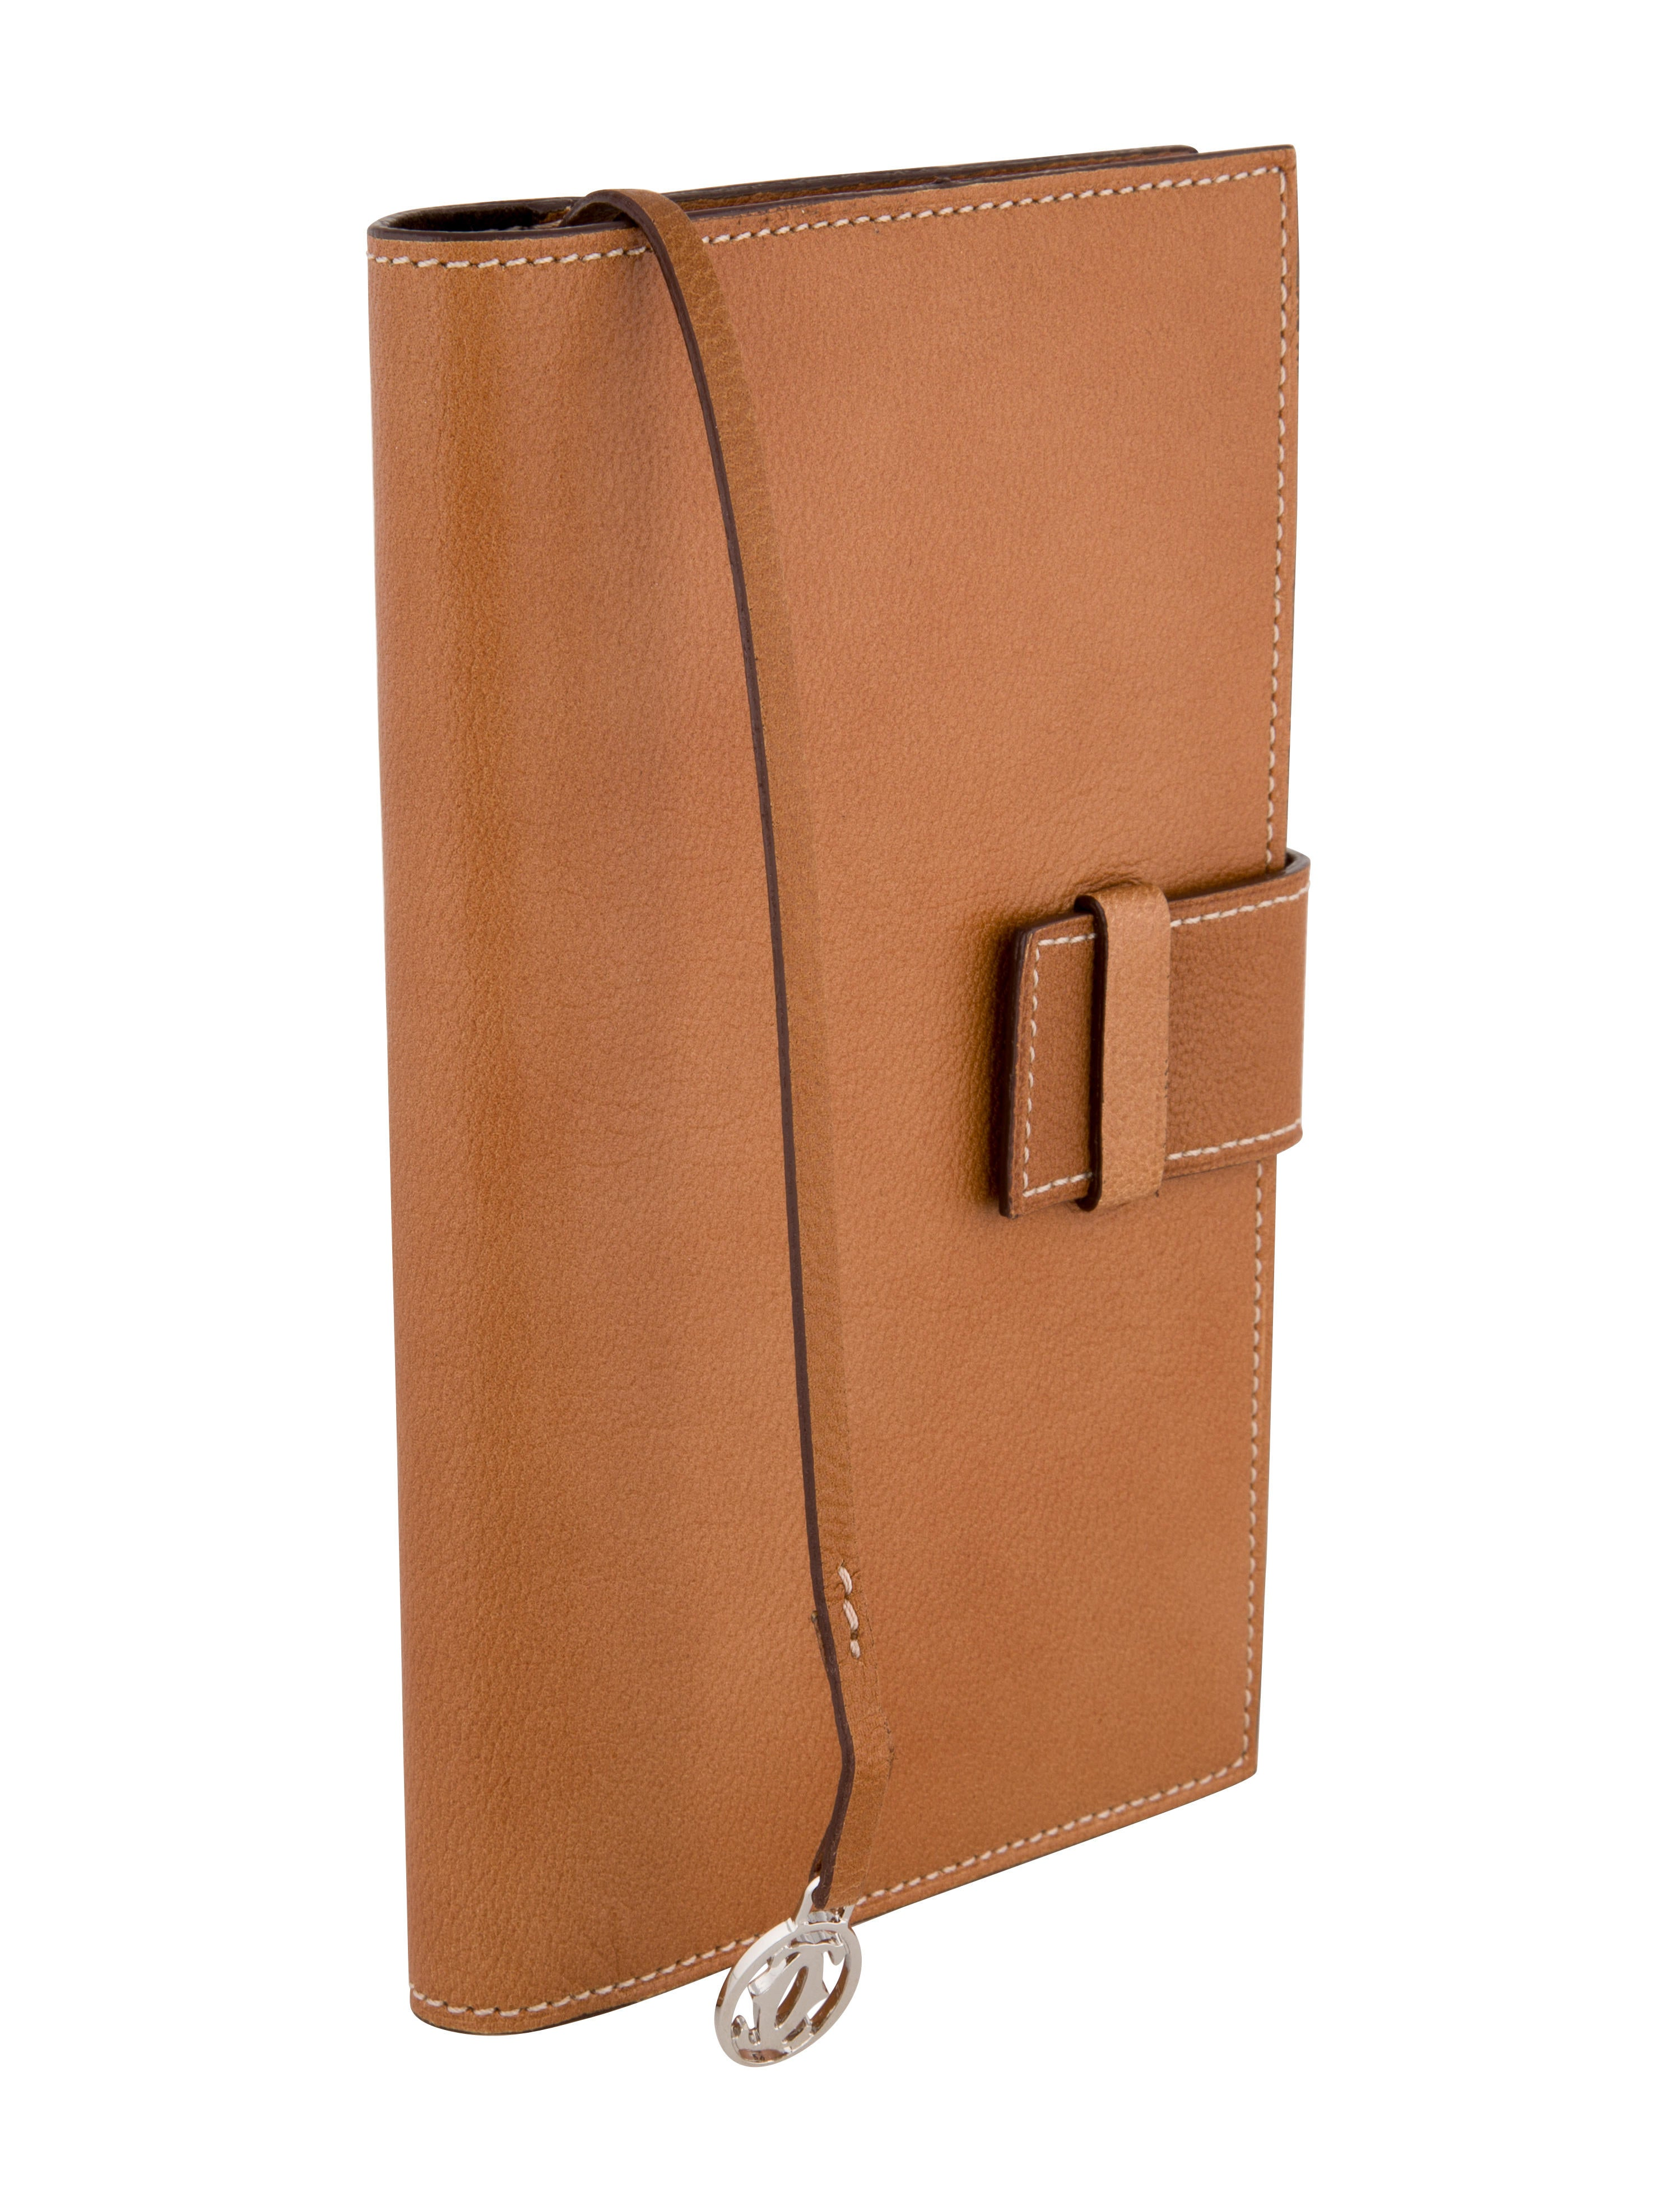 Cartier Leather Notebook Decor And Accessories